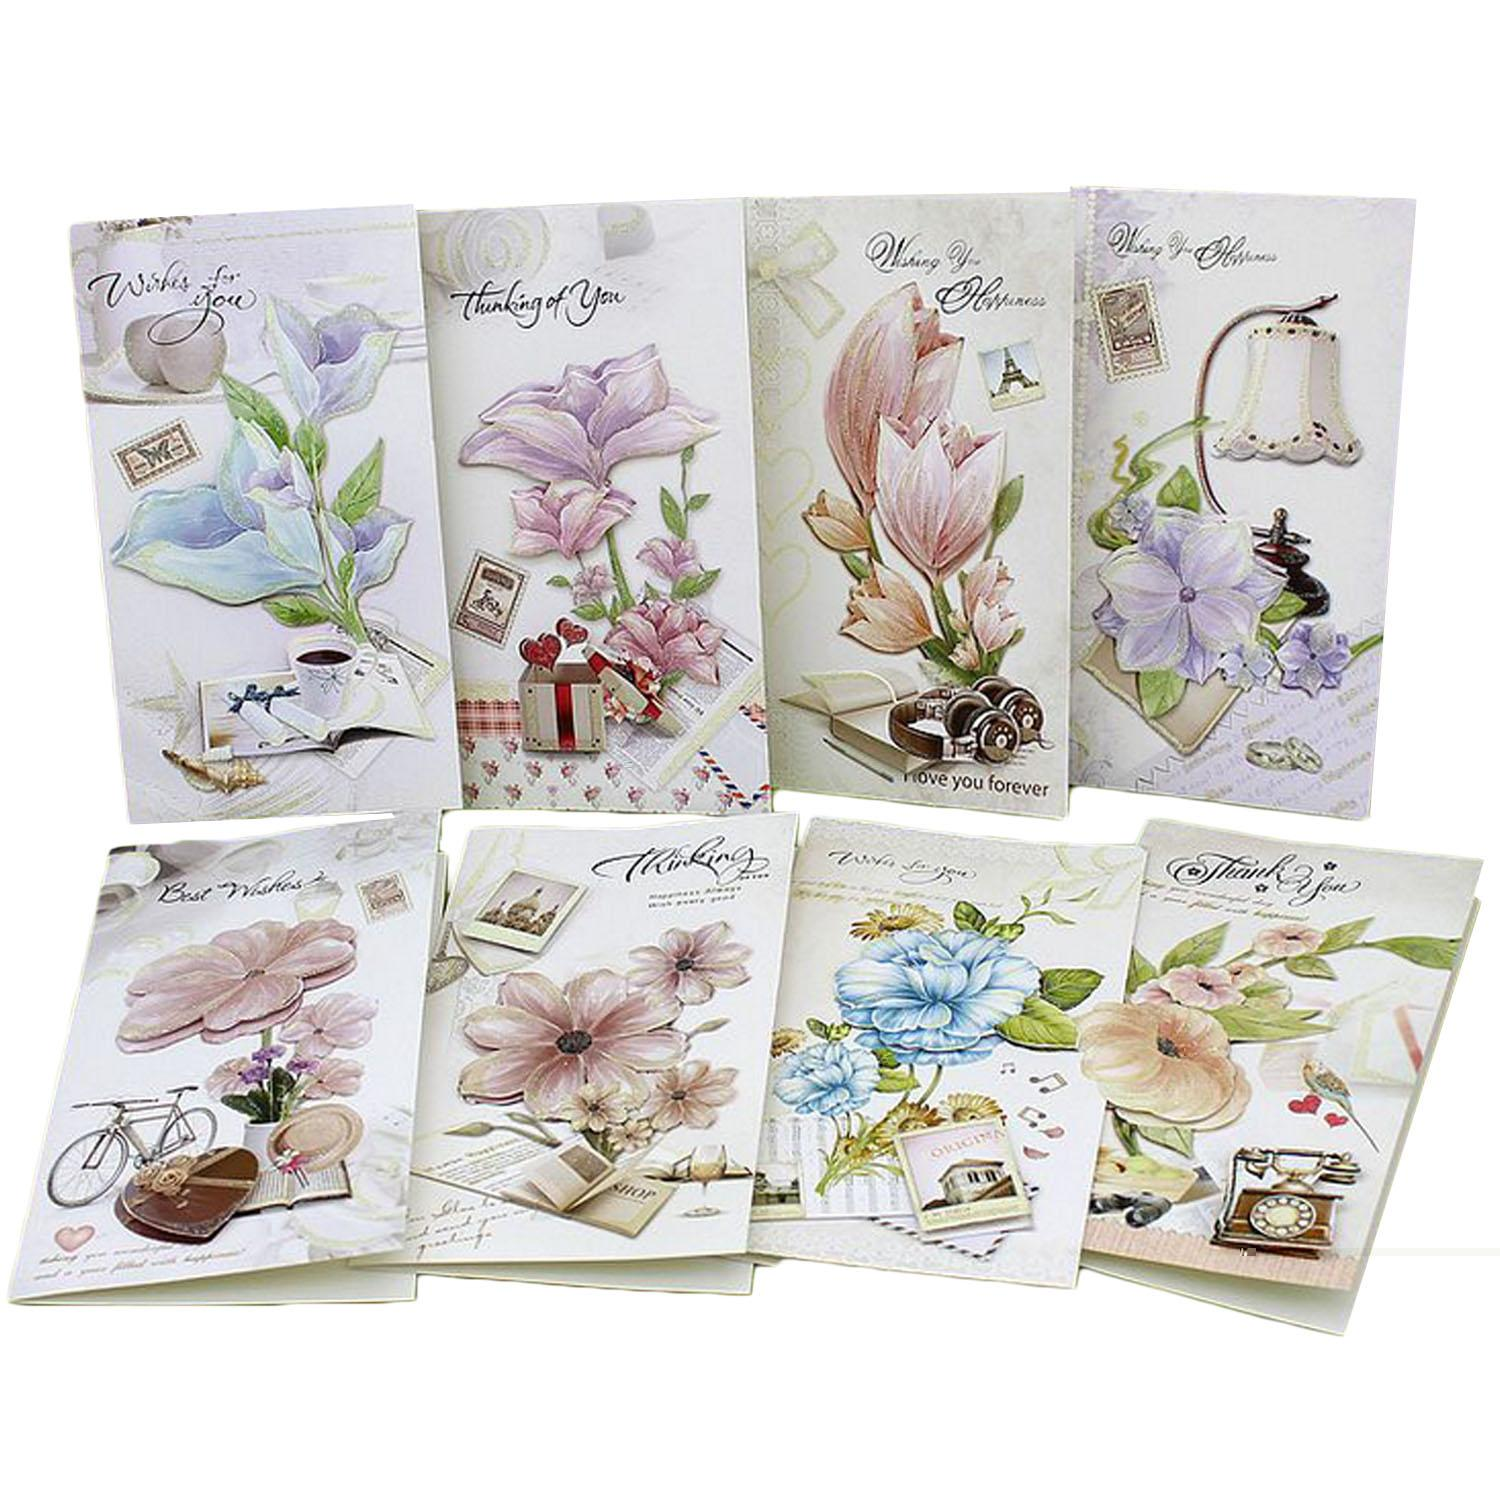 Hình ảnh 8 PCS Assorted Styles Exquisite Flower Greeting Cards Holiday Blessing Cards with Envelops for Christmas Mother's Day Birthday Thanksgiving Day - intl